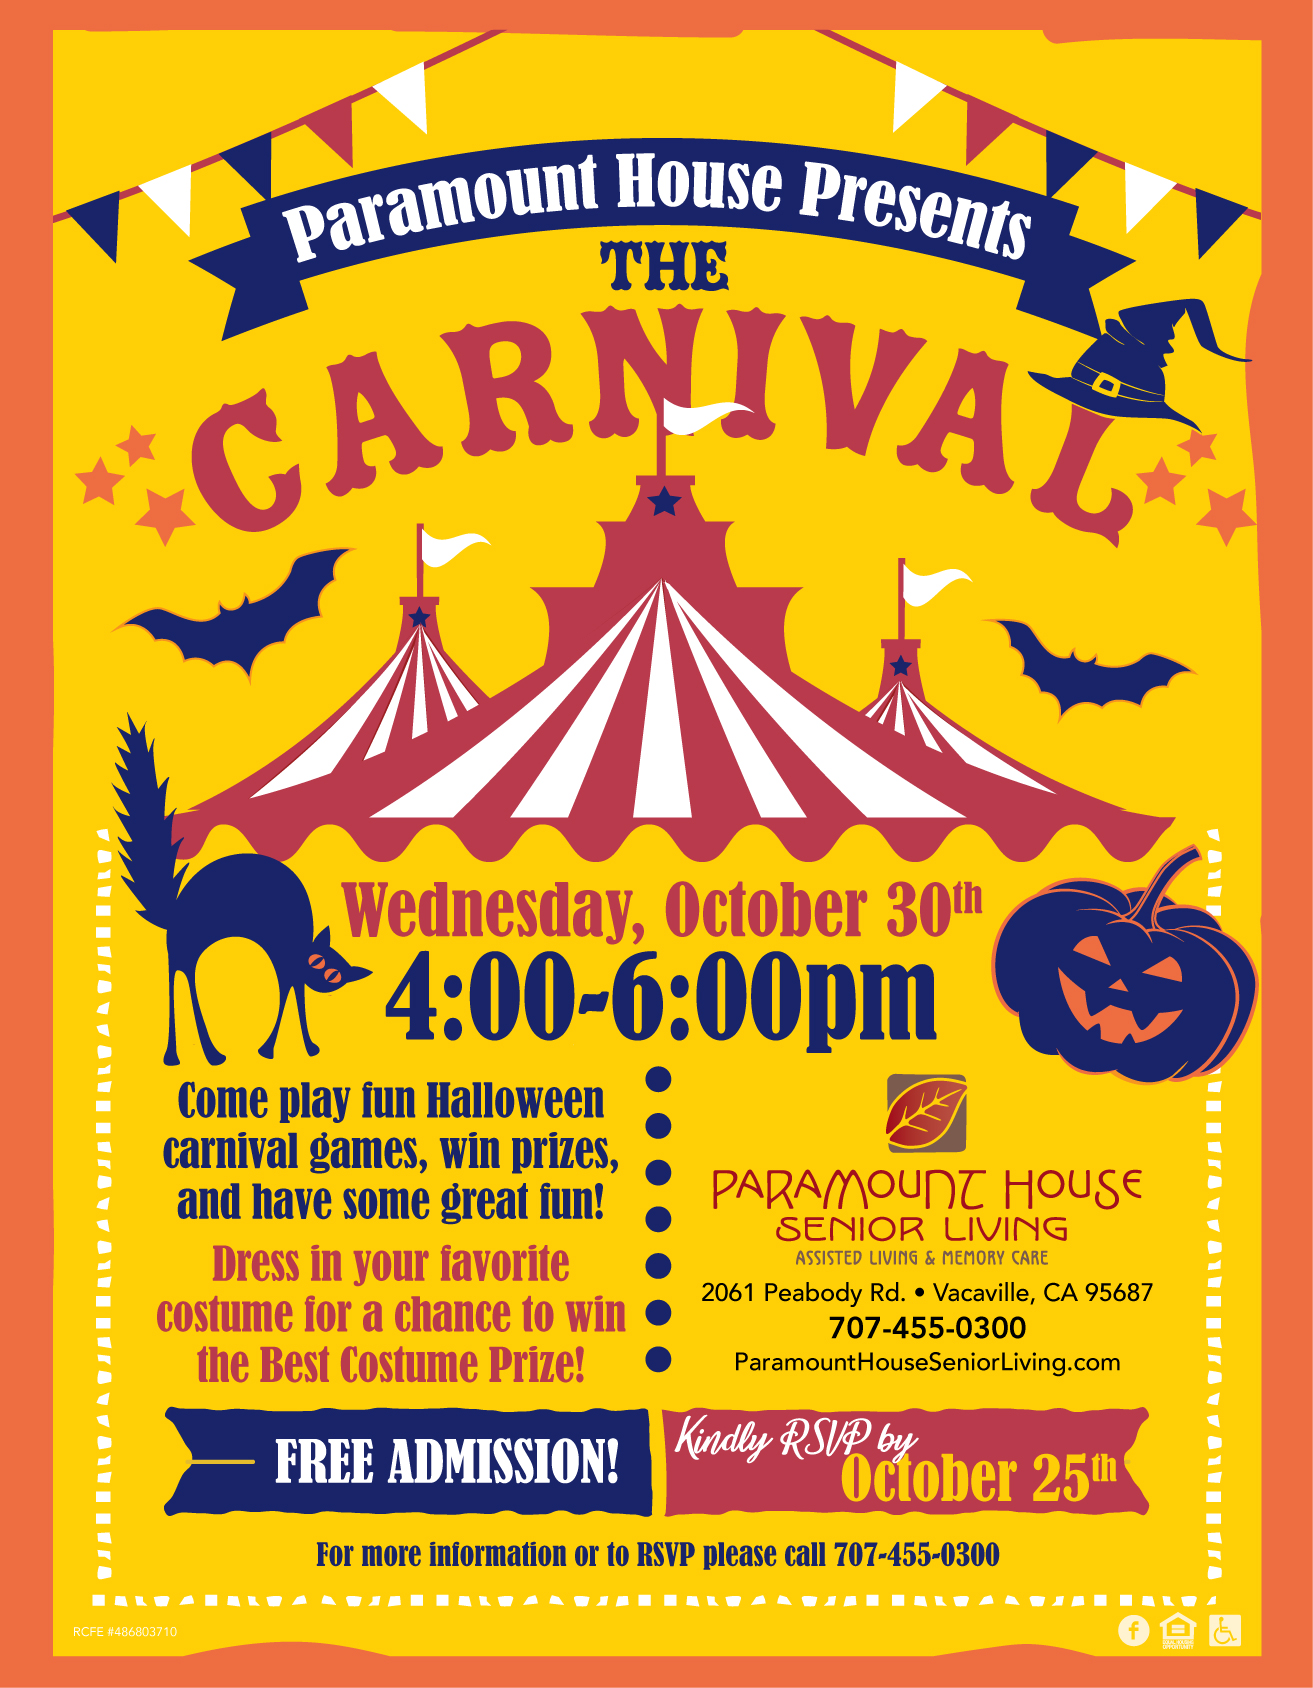 PROOF_paramount house_halloween carnival_flyer-01